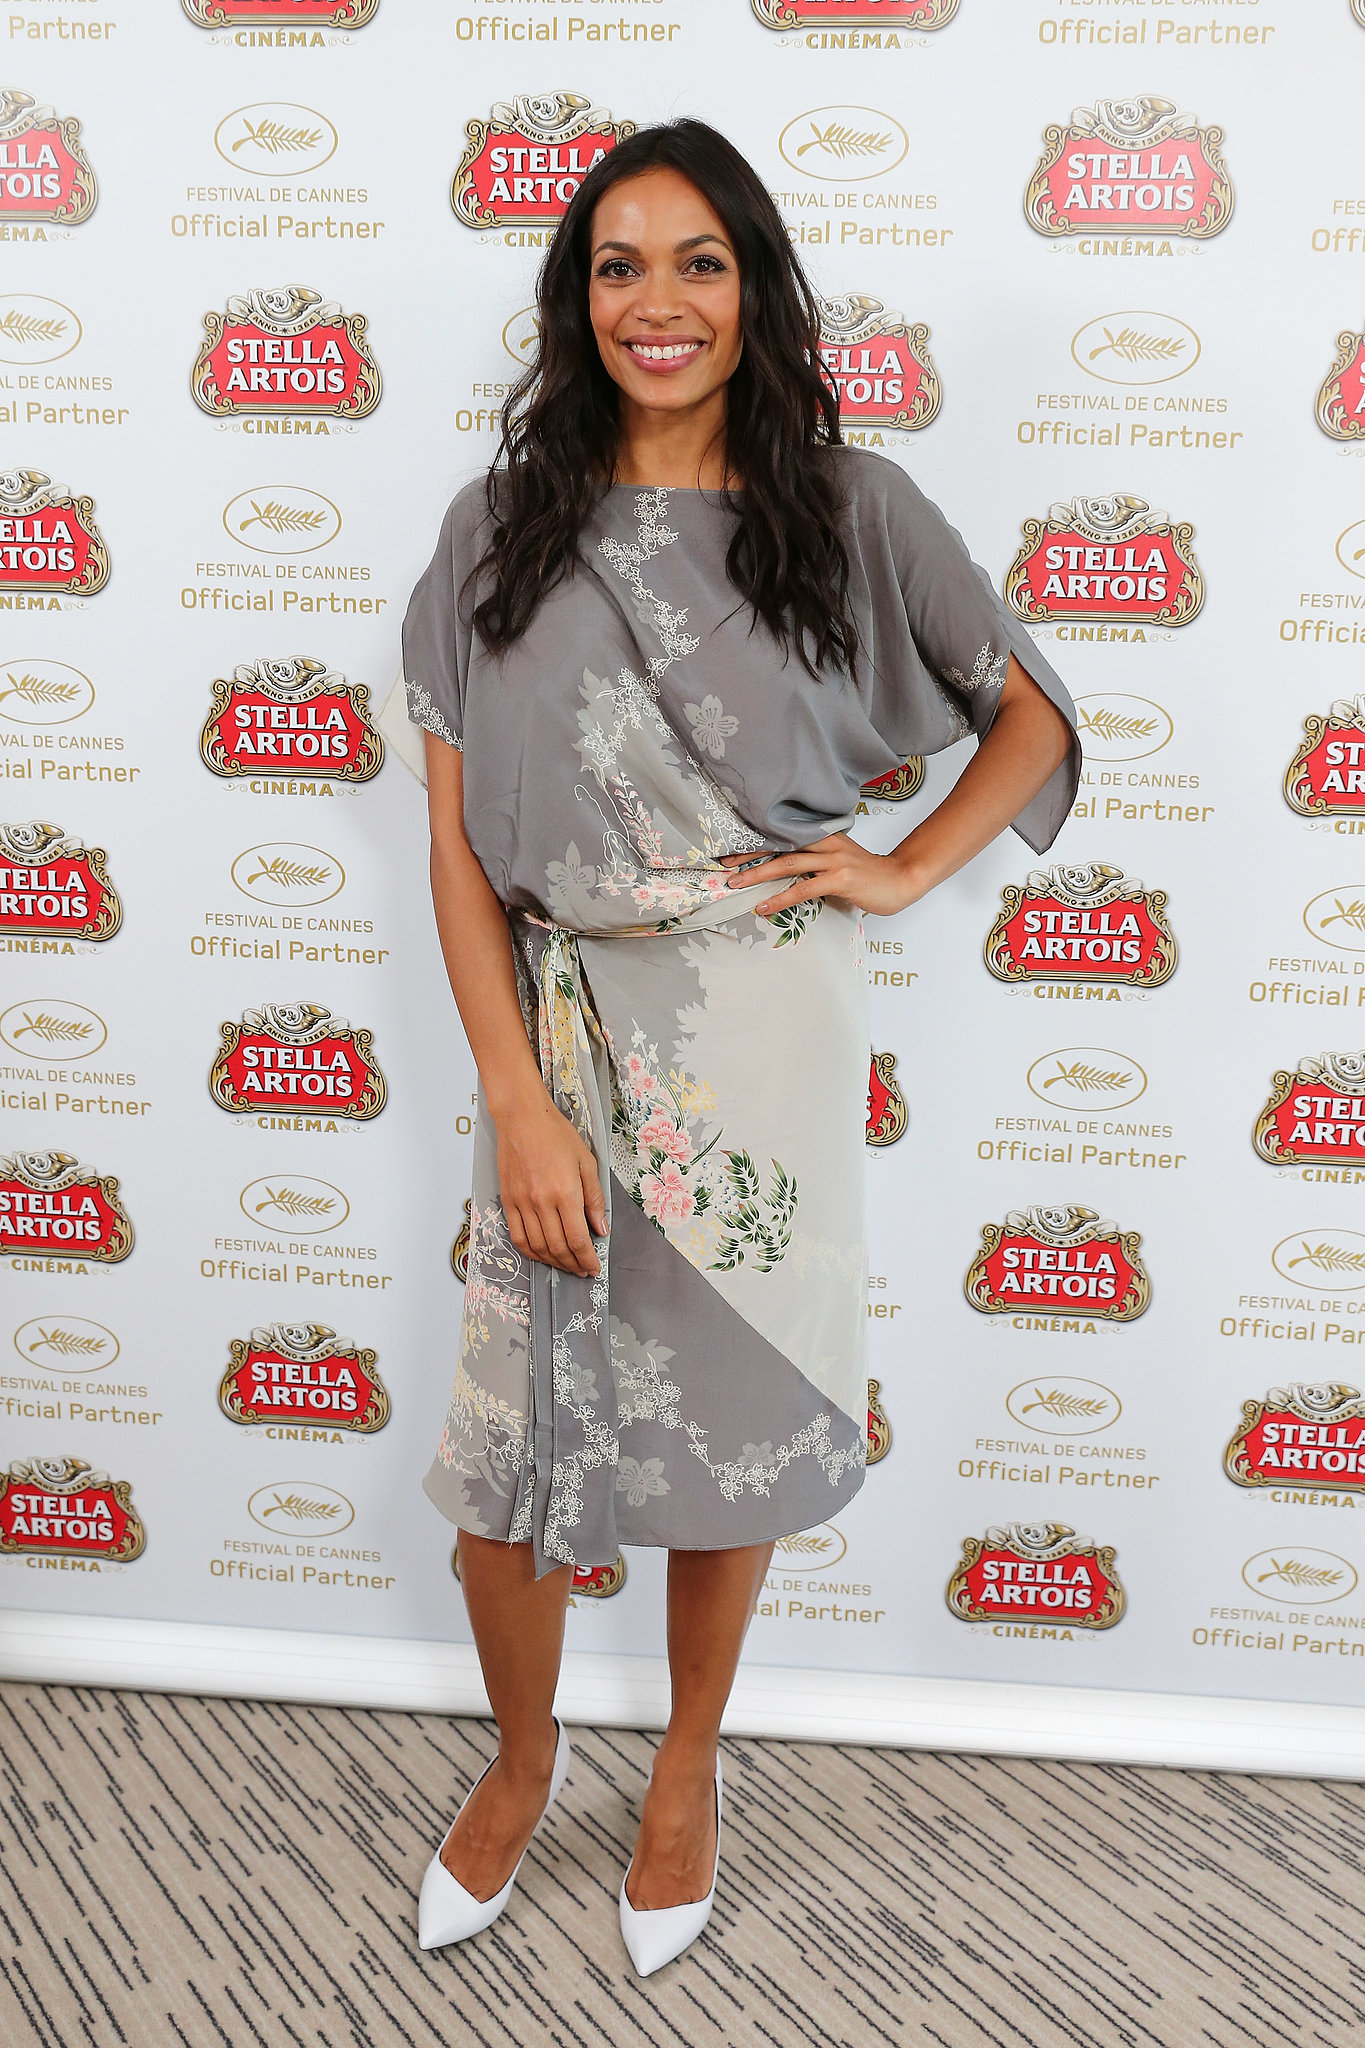 Rosario Dawson hit the Cannes Film Festival in style wearing a gray floral dress, contrasted with a pair of crisp white pumps.